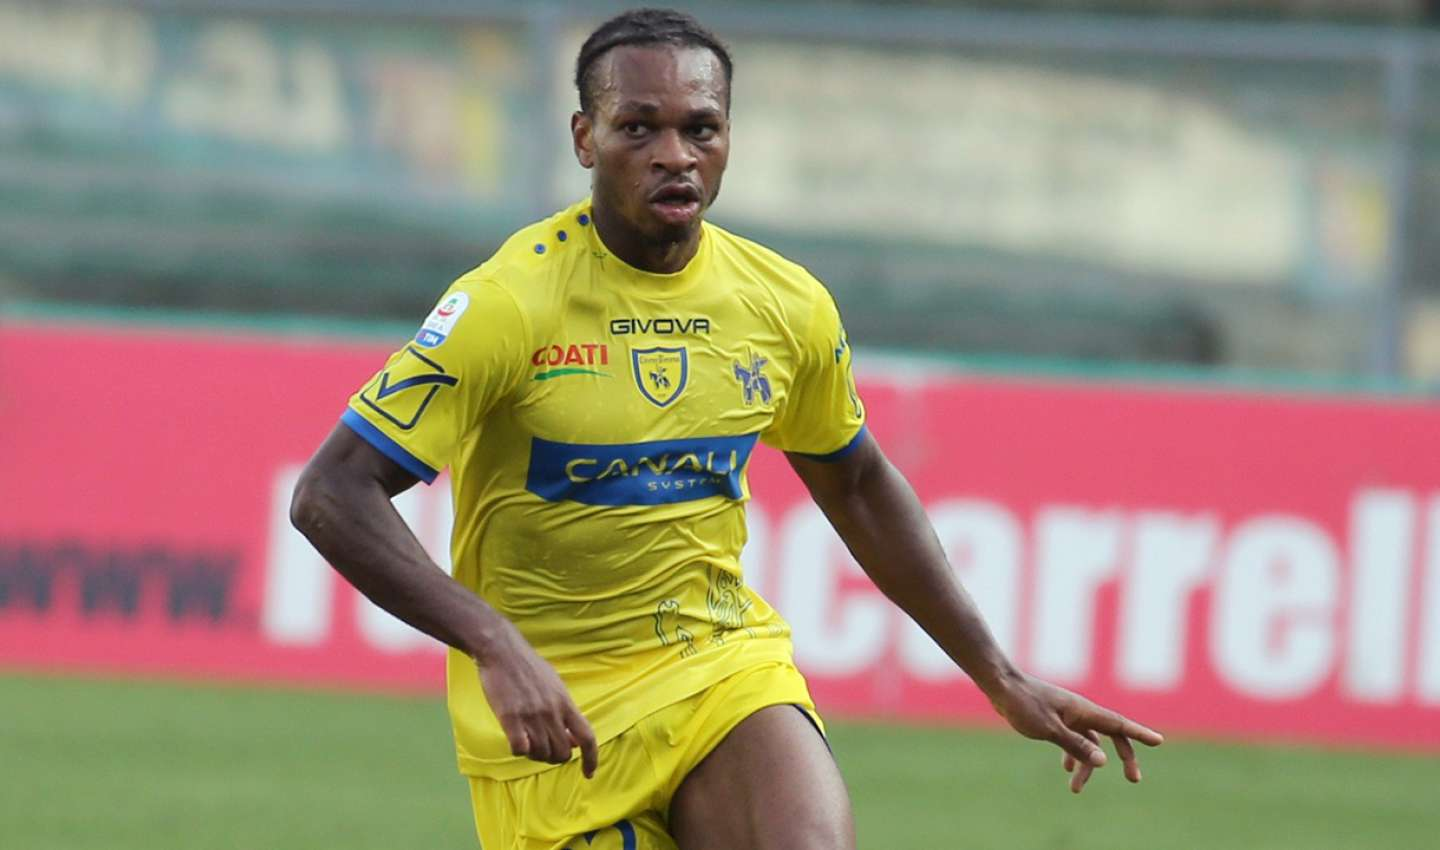 Obi's Chievo Miss Out On Serie A Promotion After Semi-final Play-offs Defeat To Spezia